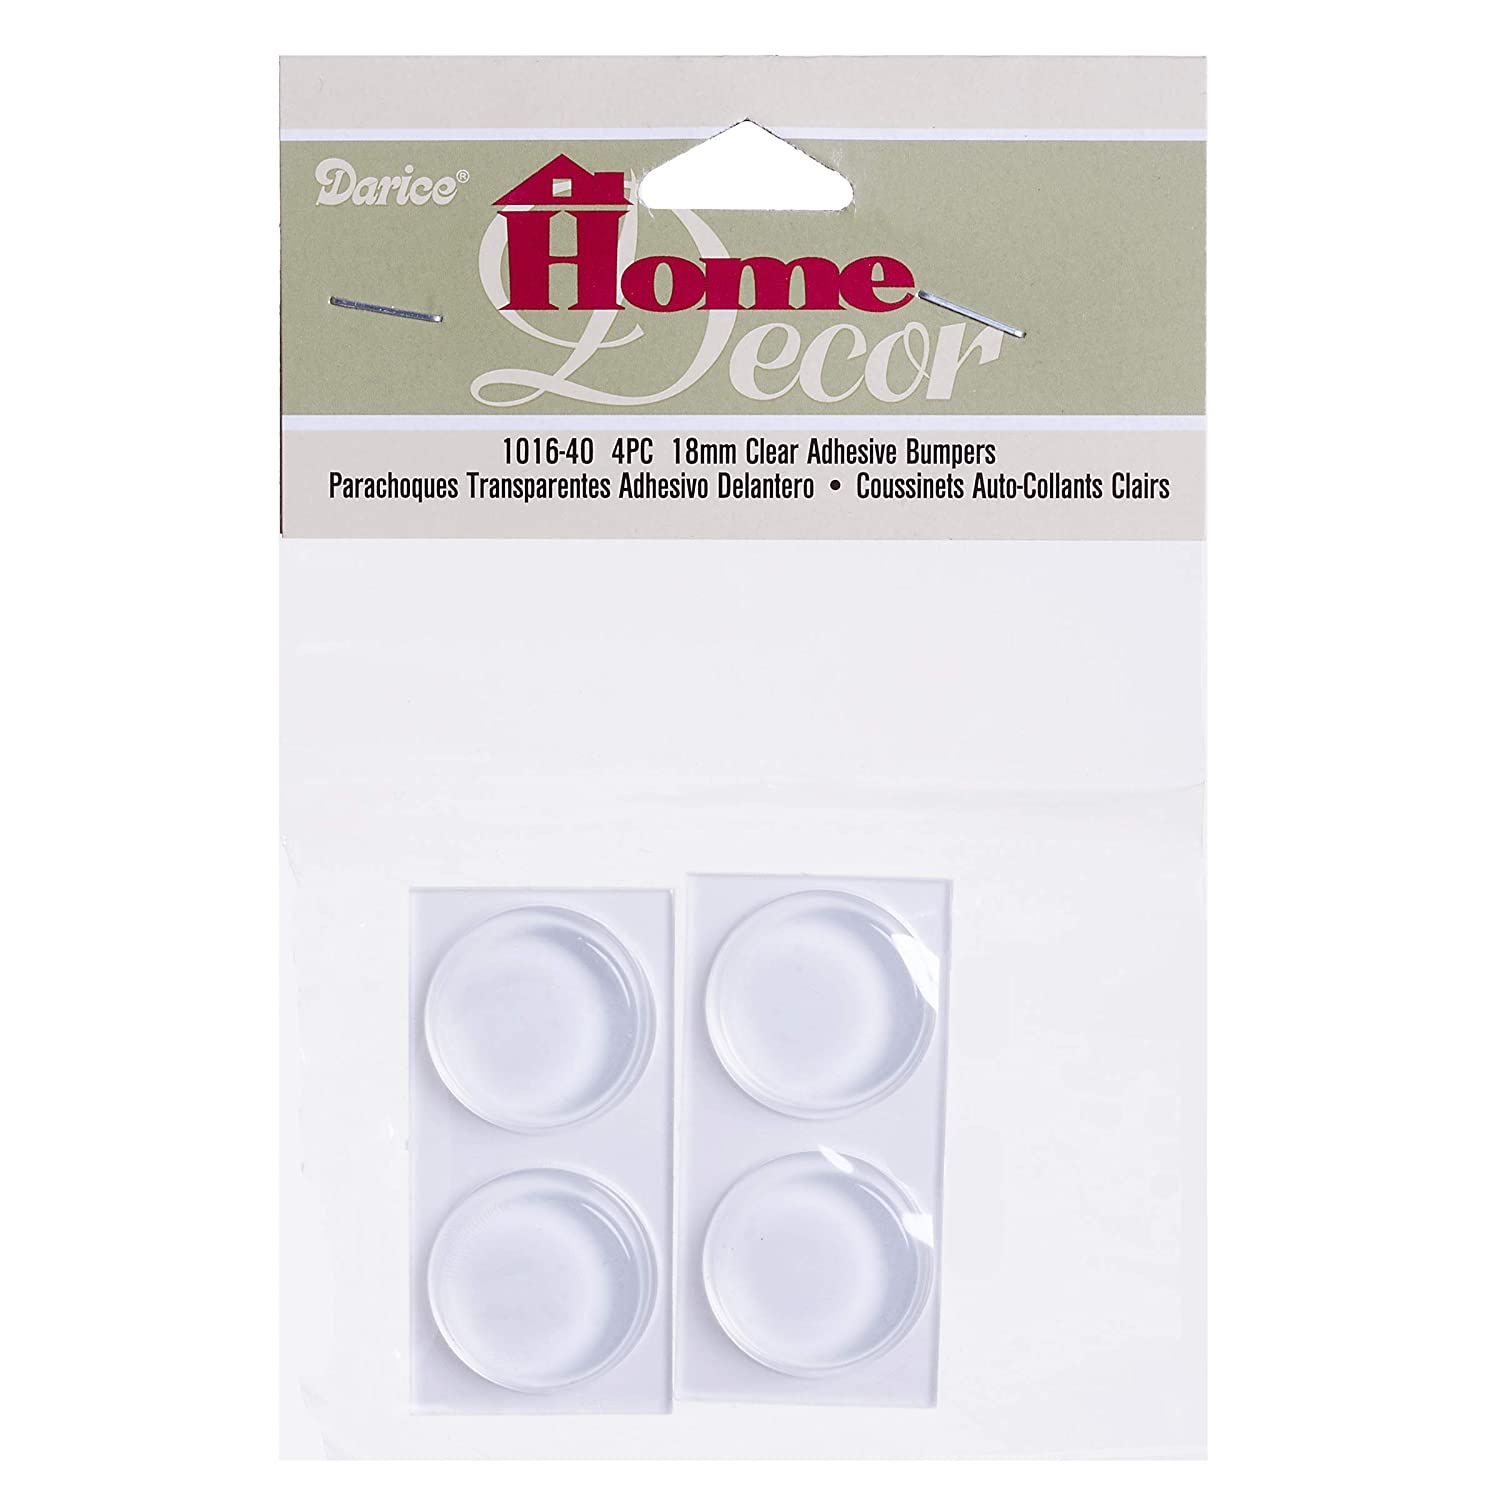 Darice Bumpers 18 by 5 Millimeter 4 Piece Clear Adhesive Back